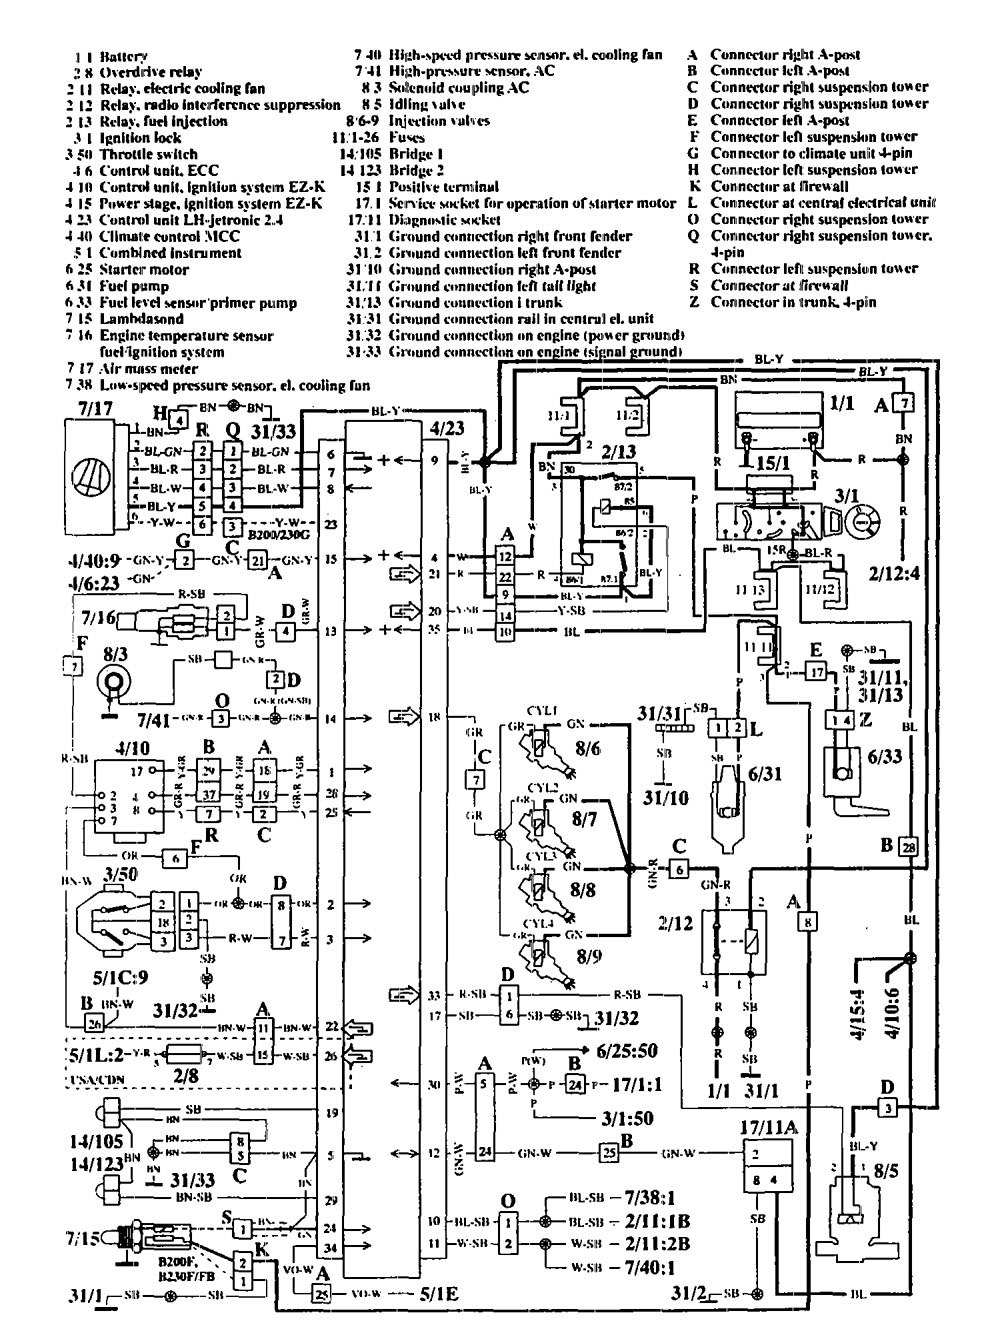 Volvo Wiring Diagram Fuel Controls V on 1995 Cadillac Wiring Diagrams